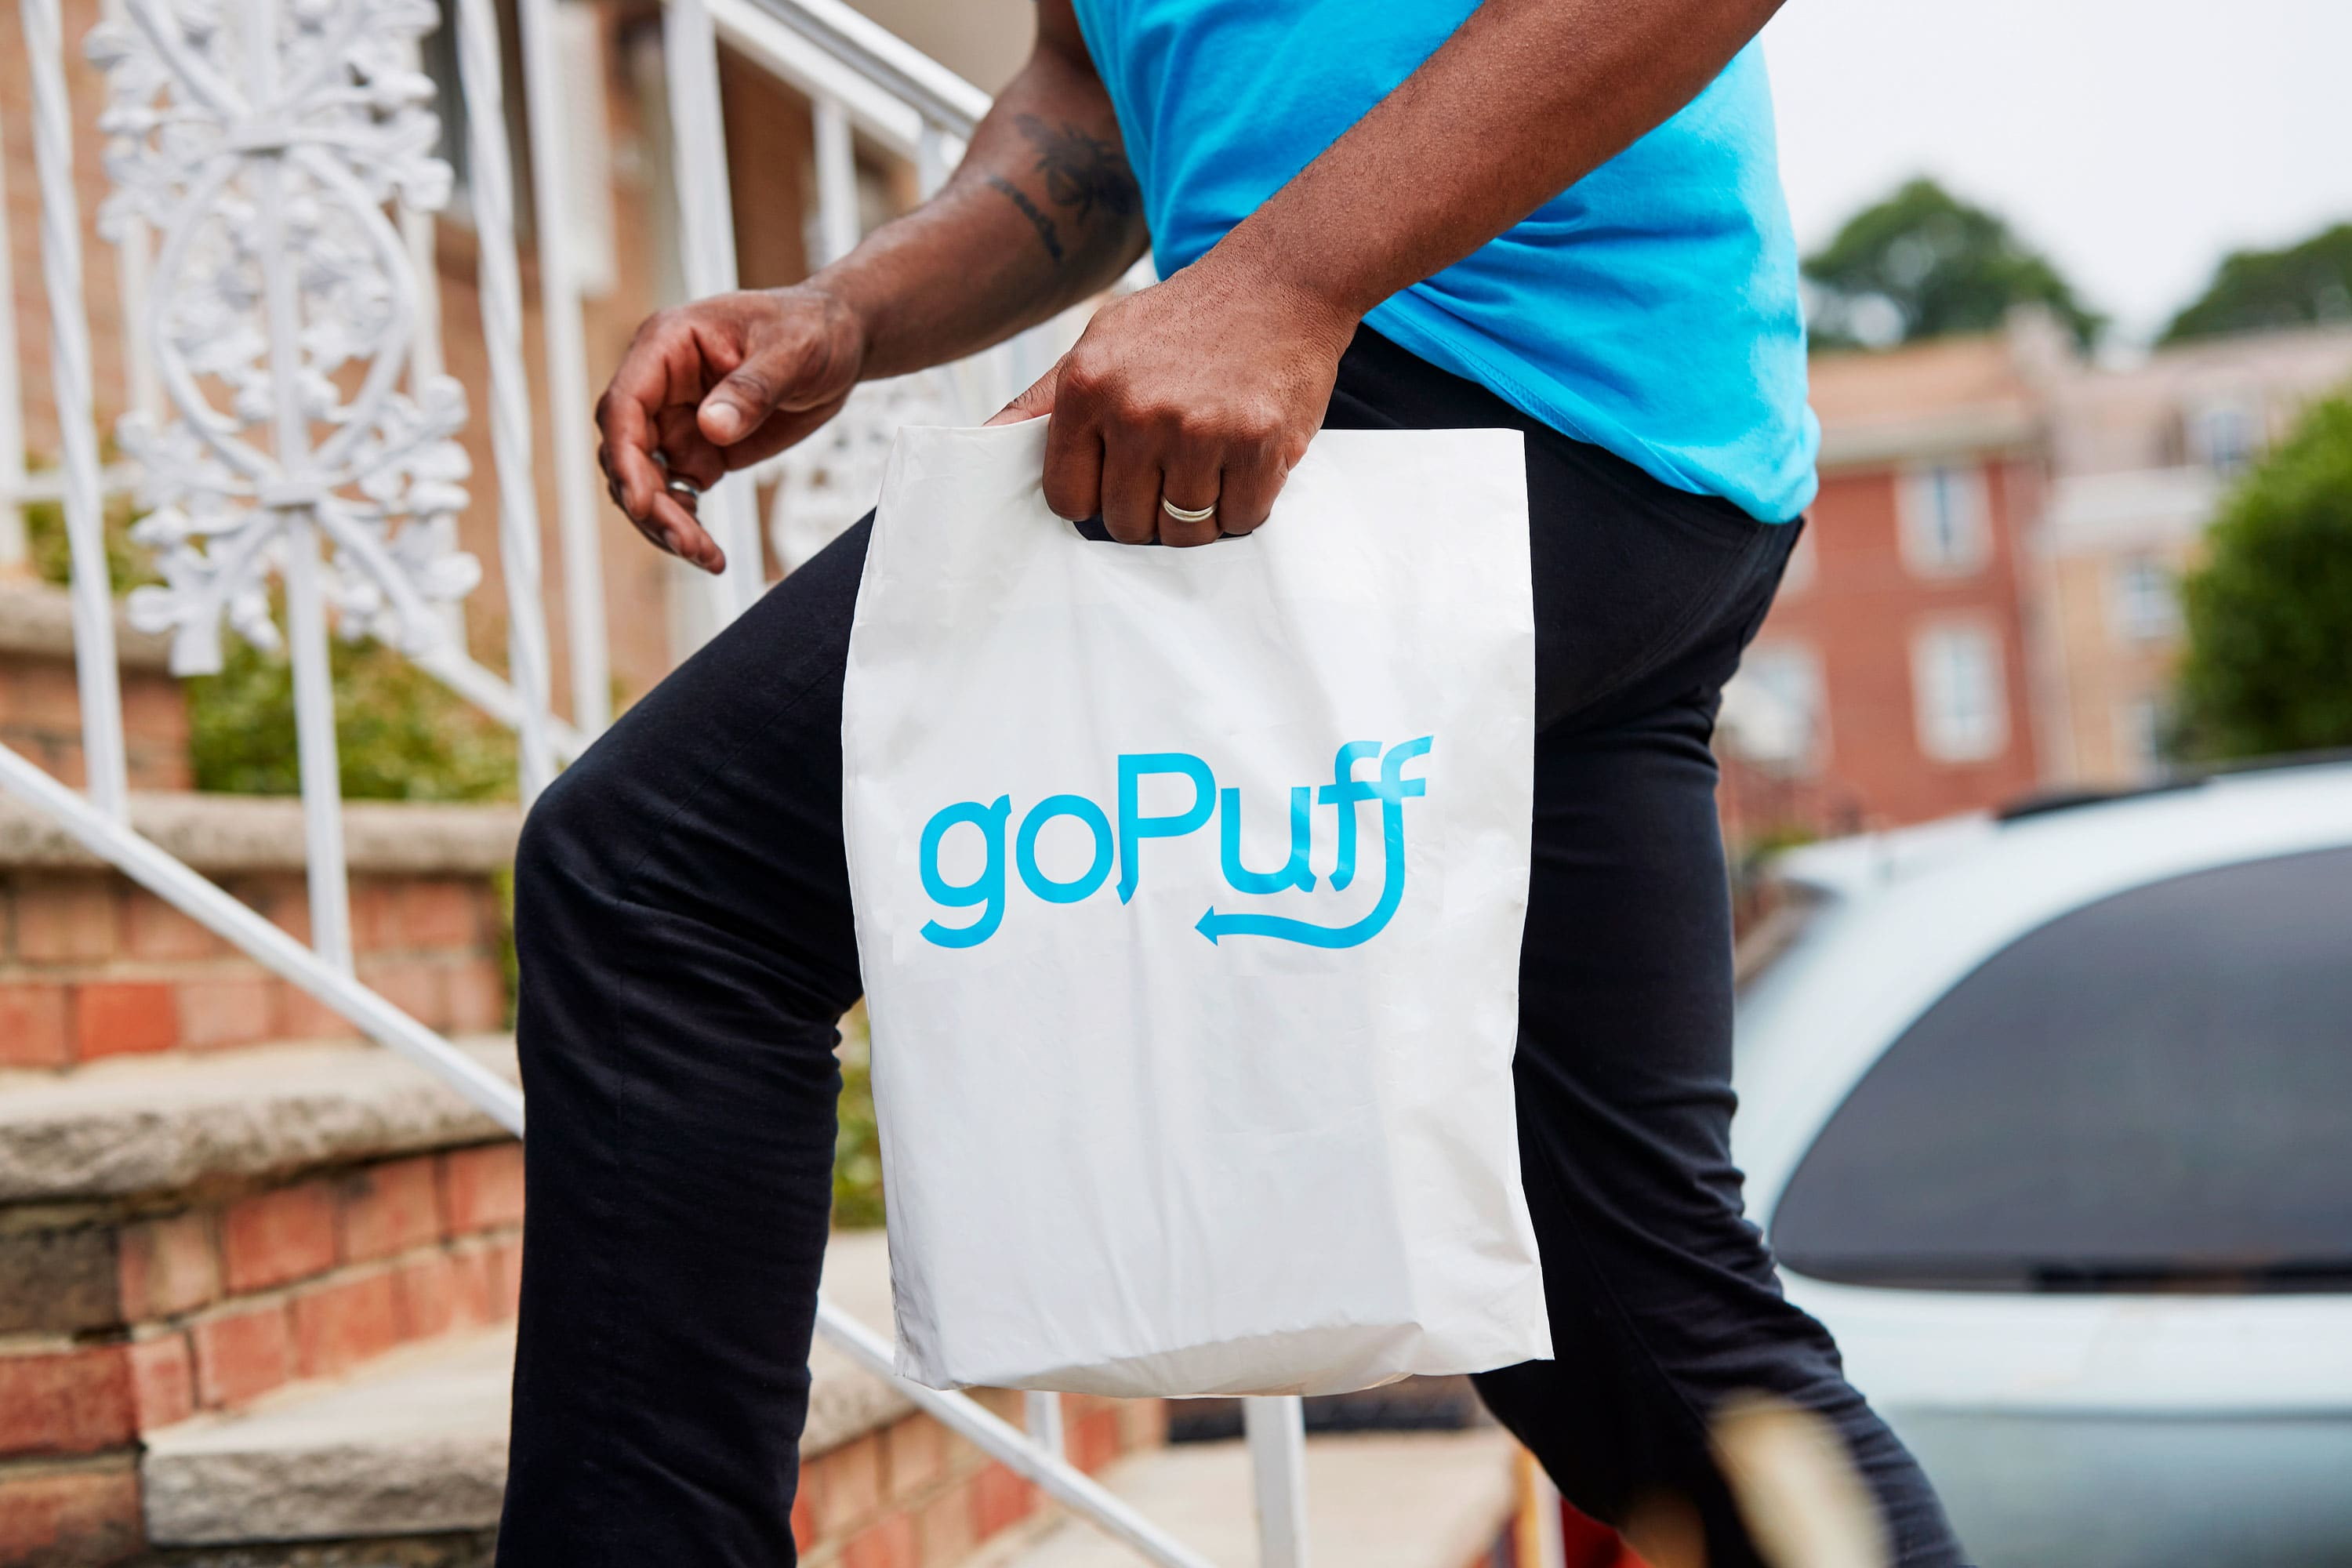 SoftBank-backed Gopuff snags another mega investment, boosting valuation to $15 billion